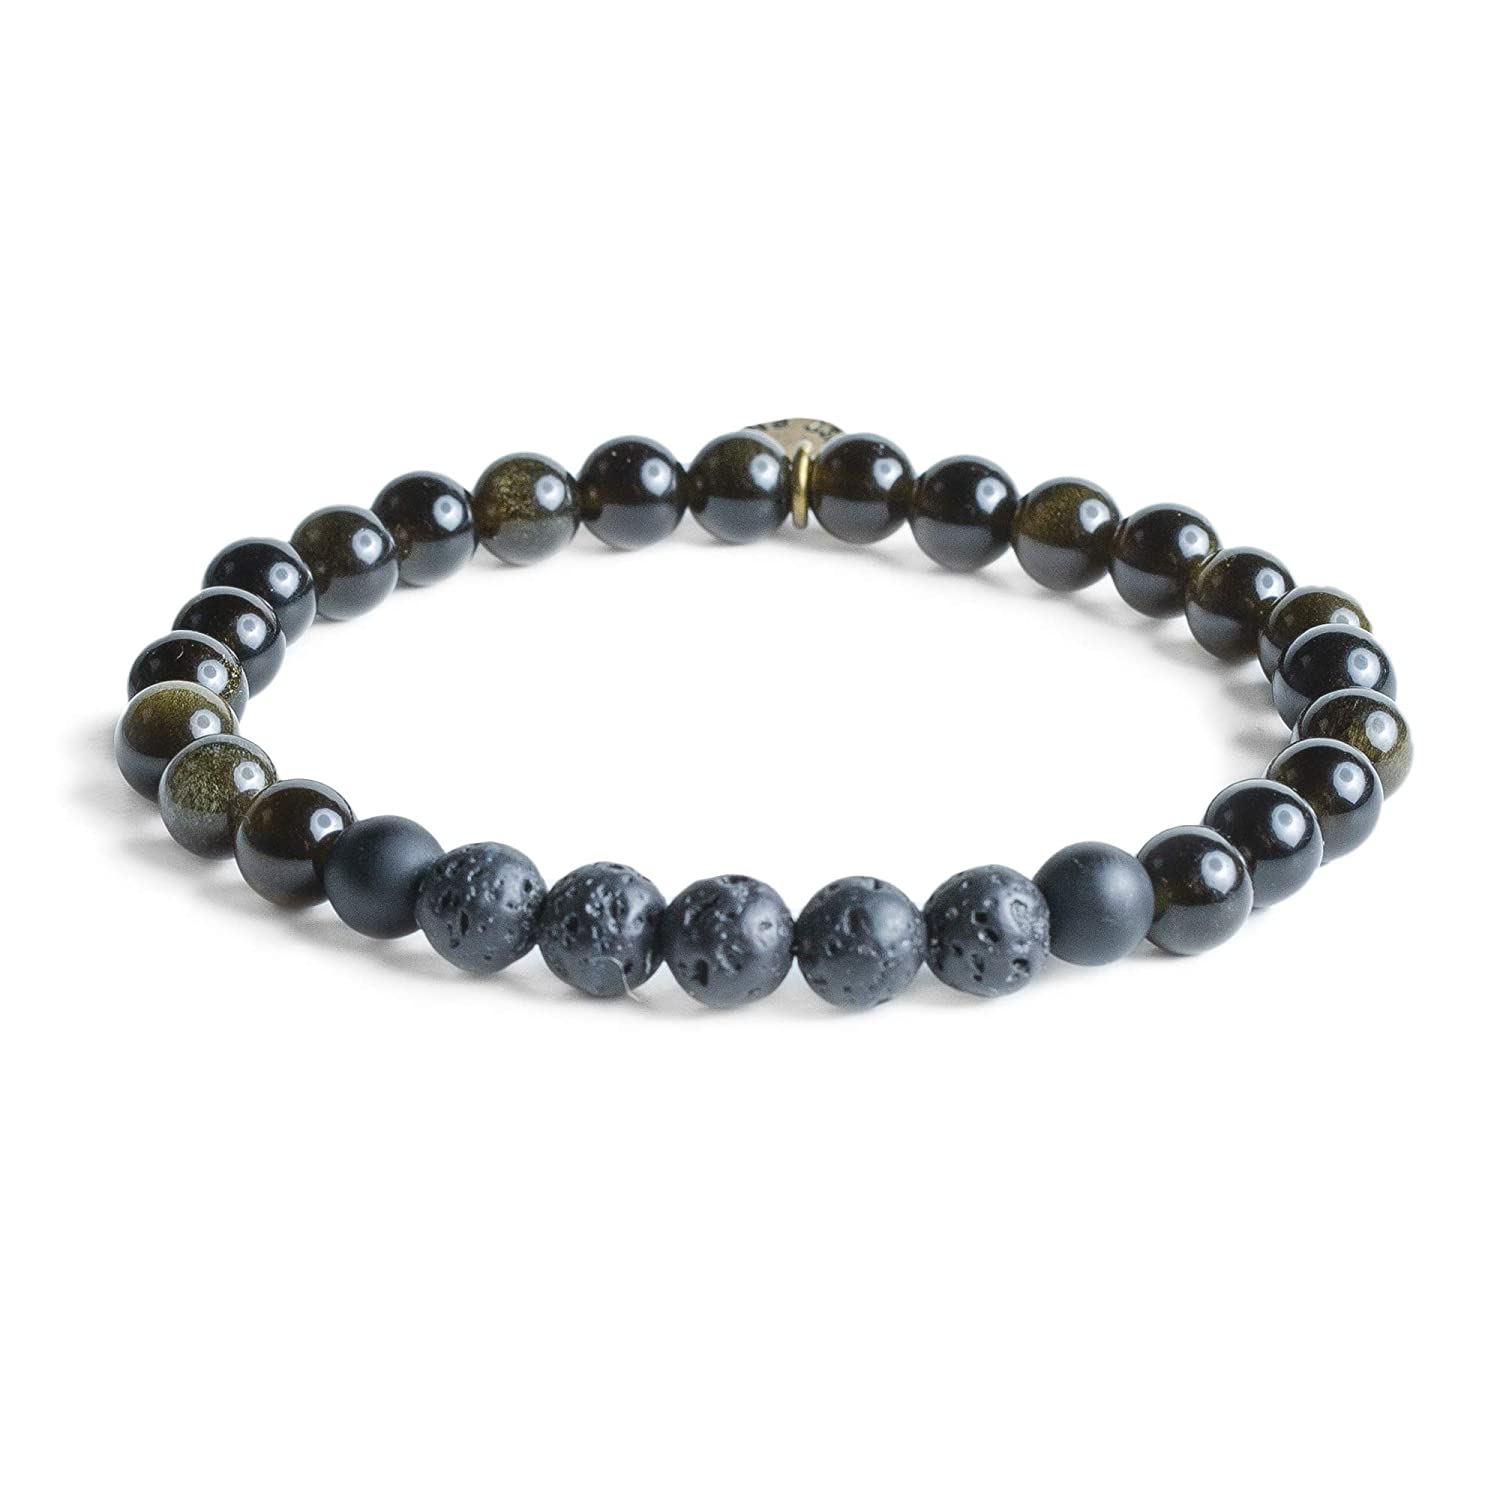 Edens Garden Lido Bracelet Essential Oil Lava Bracelet (Best for Diffusion and Aromatherapy Jewelry)